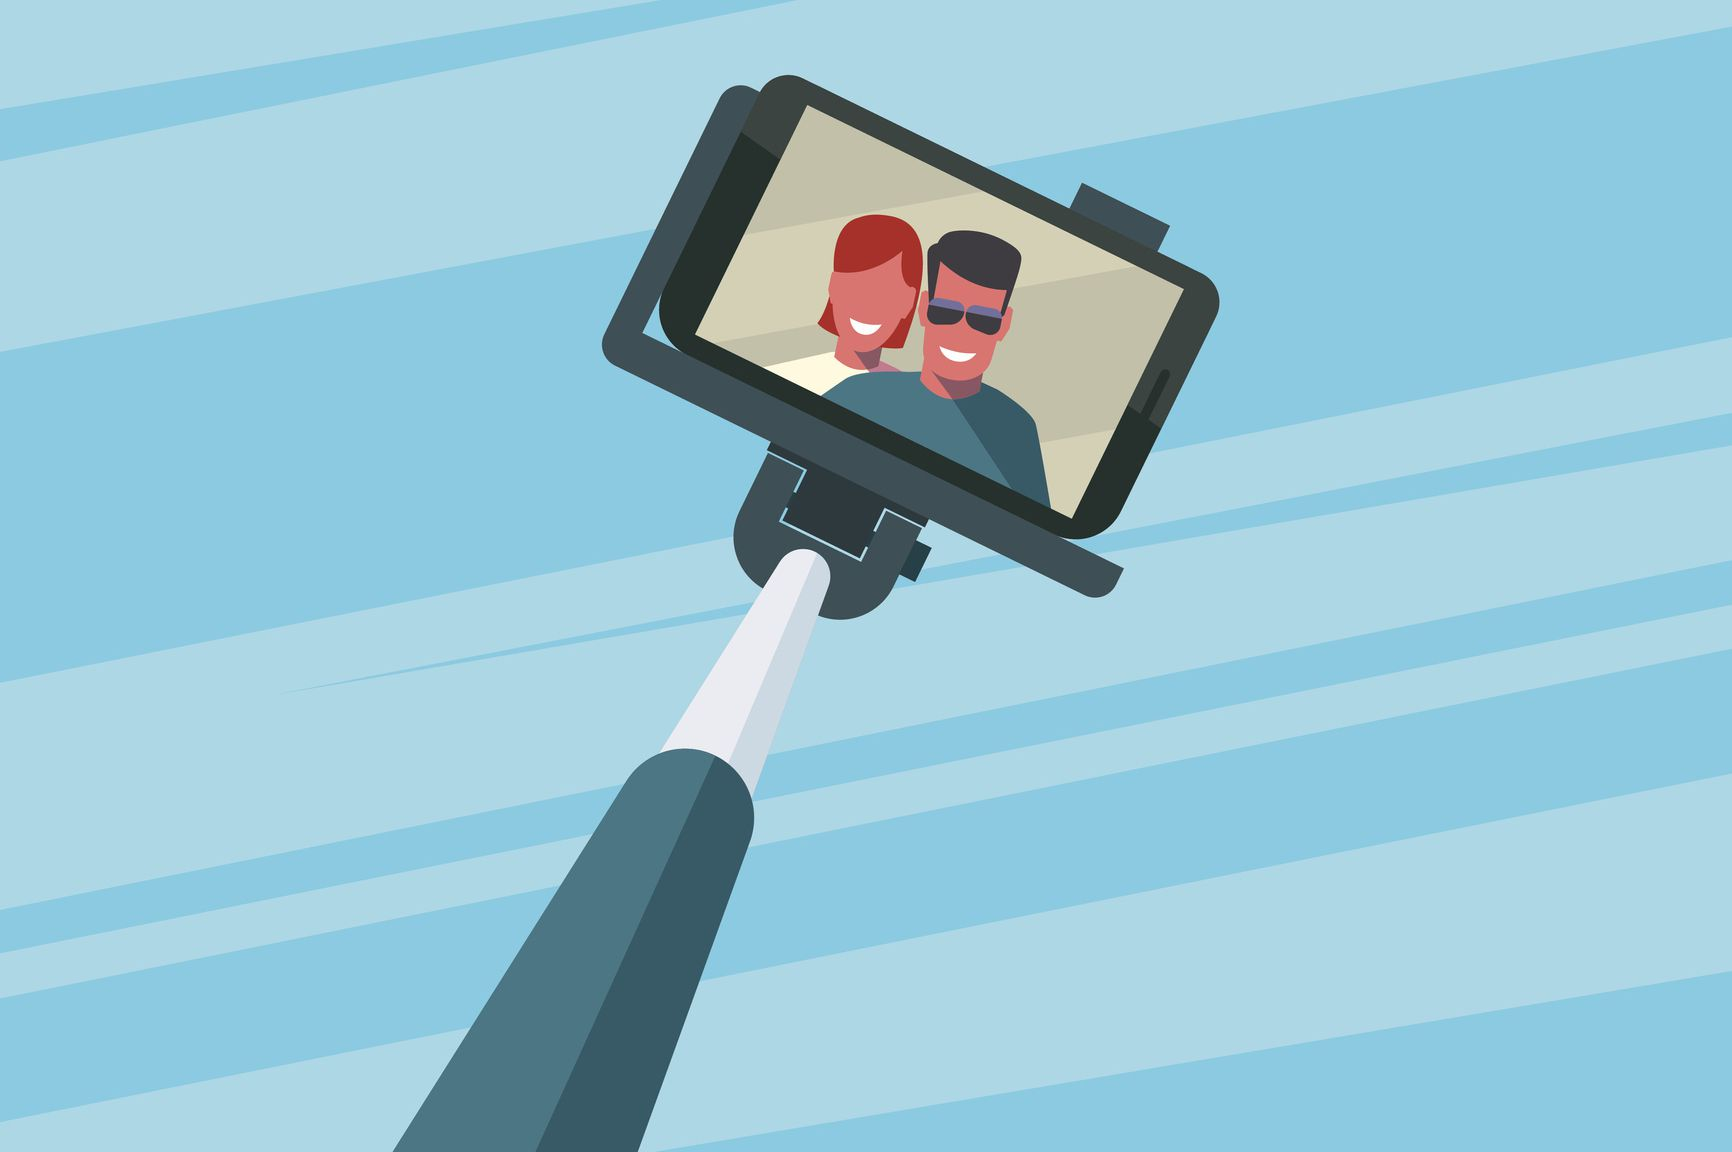 A couple taking a selfie with a selfie stick.